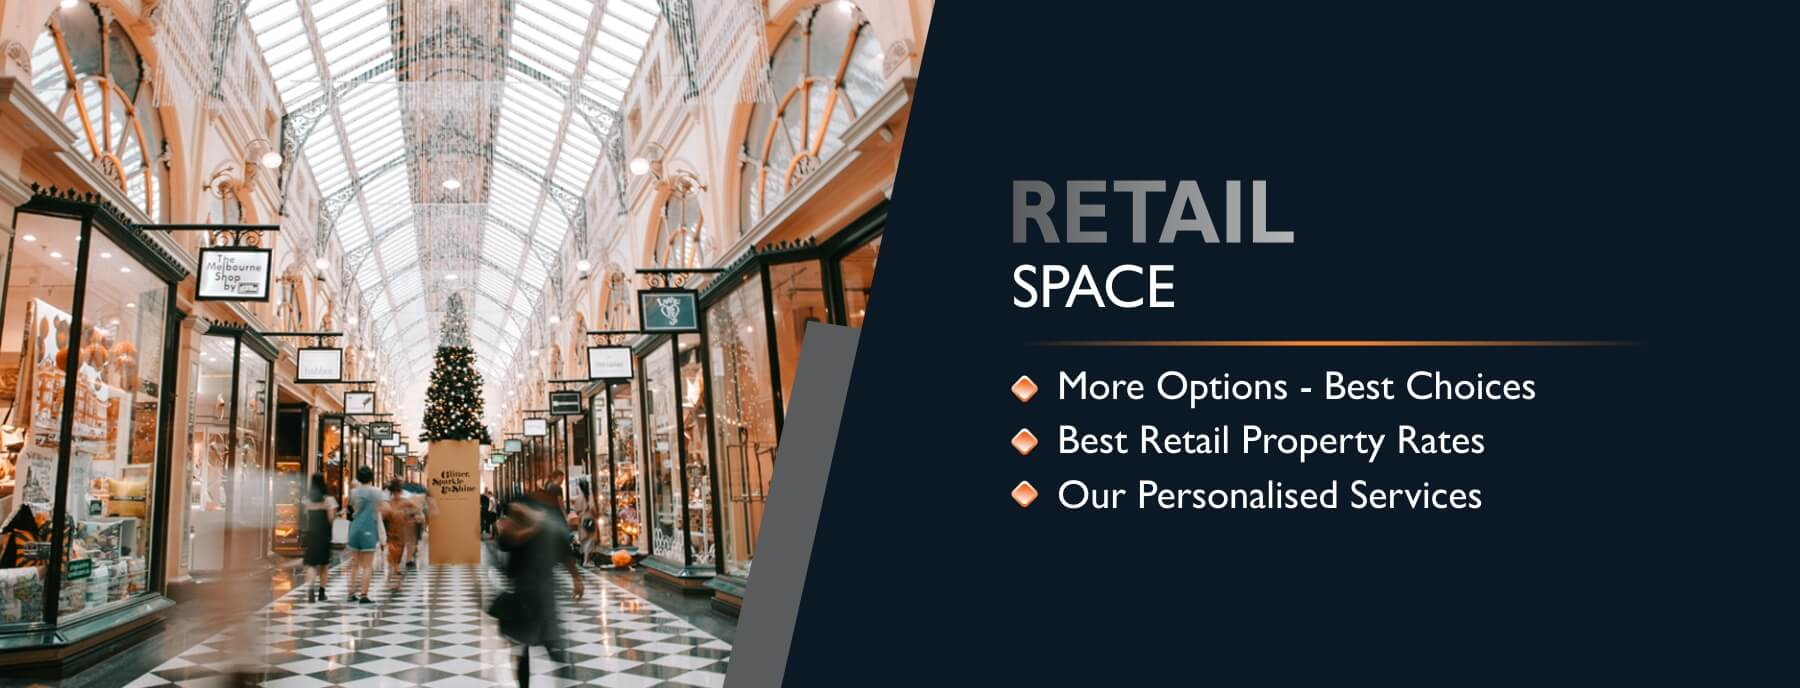 Commercial Retail Space for Rent in Mumbai | Restaurant & Shop for Sale